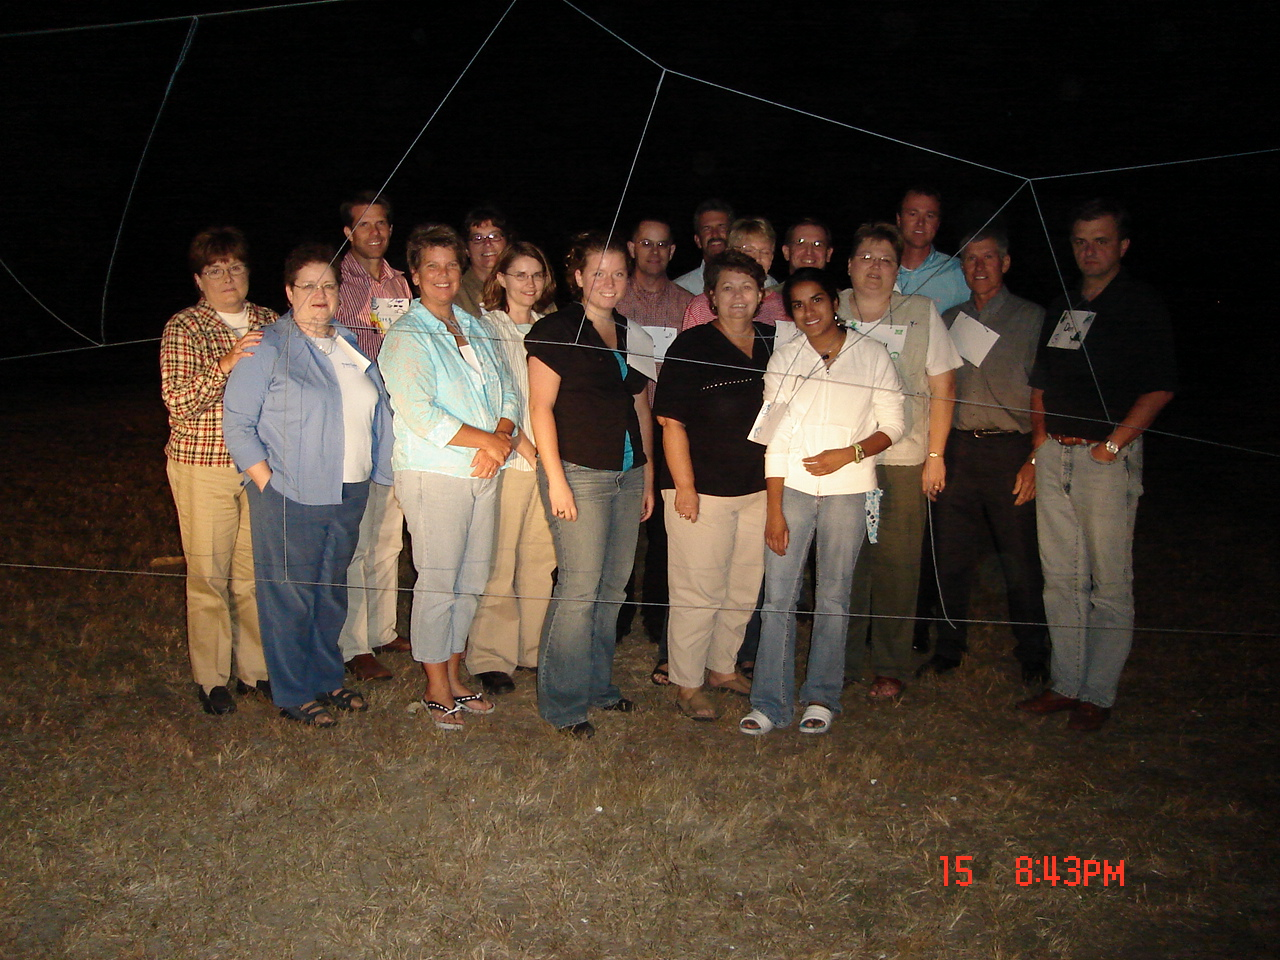 Sept'05-group by spider's web.jpg